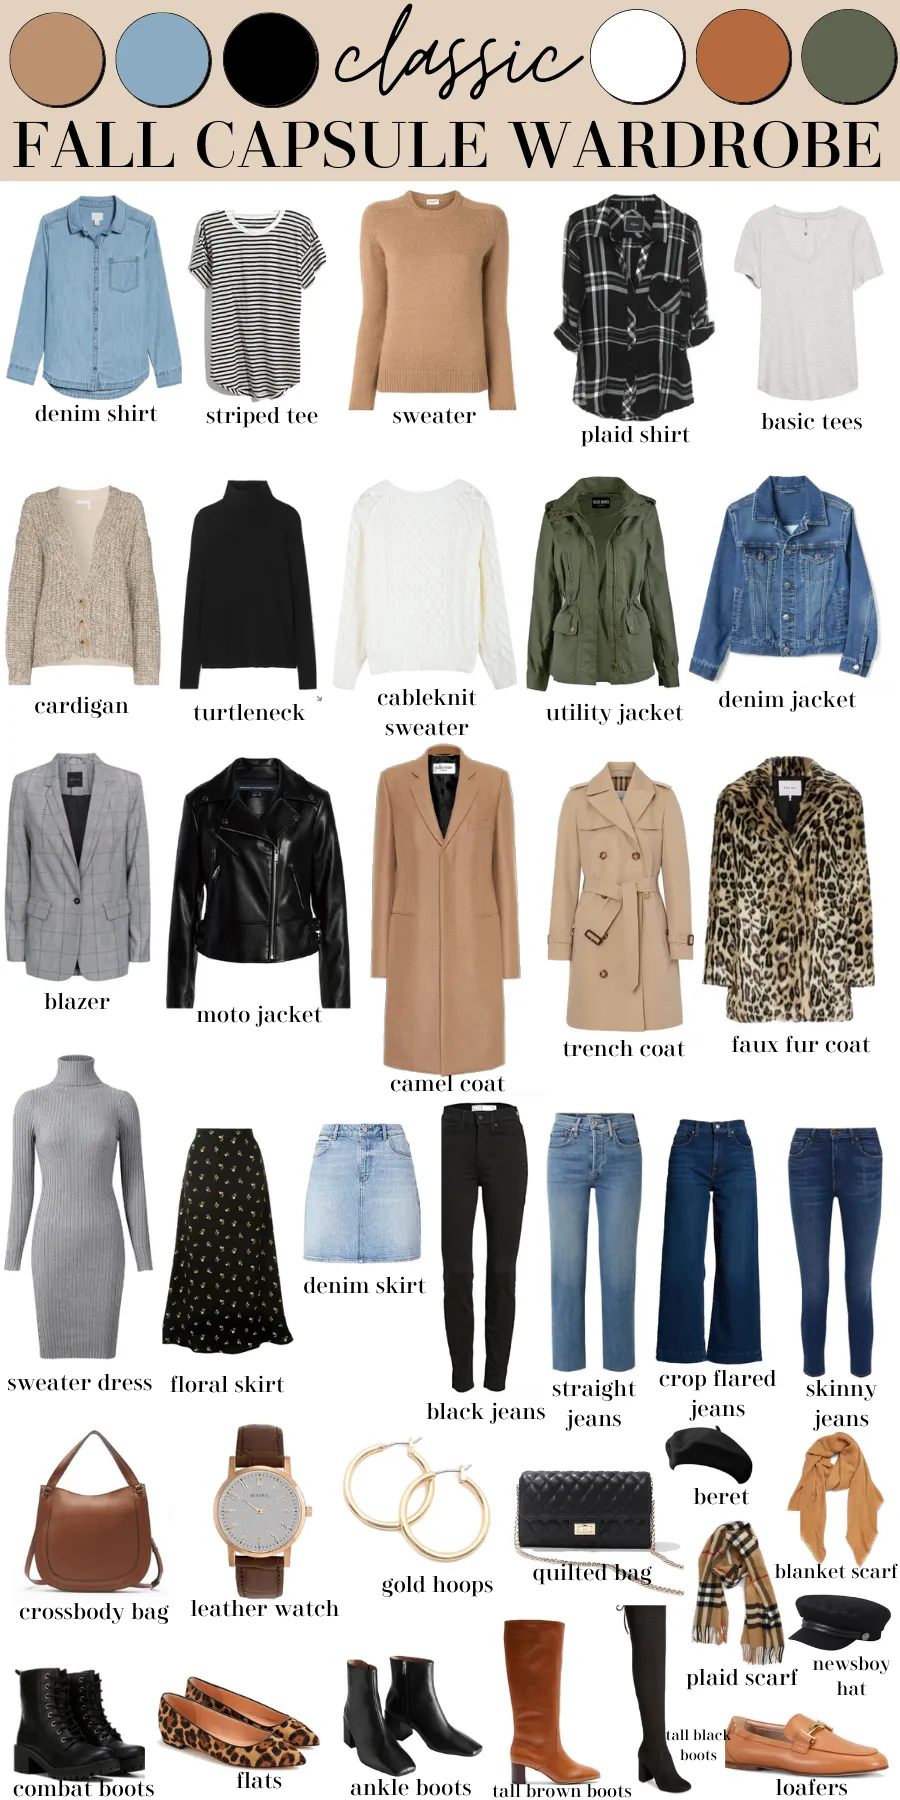 Classic Fall Capsule Wardrobe (Shopping List, Outfit Ideas, & More!) – MY CHIC OBSESSION